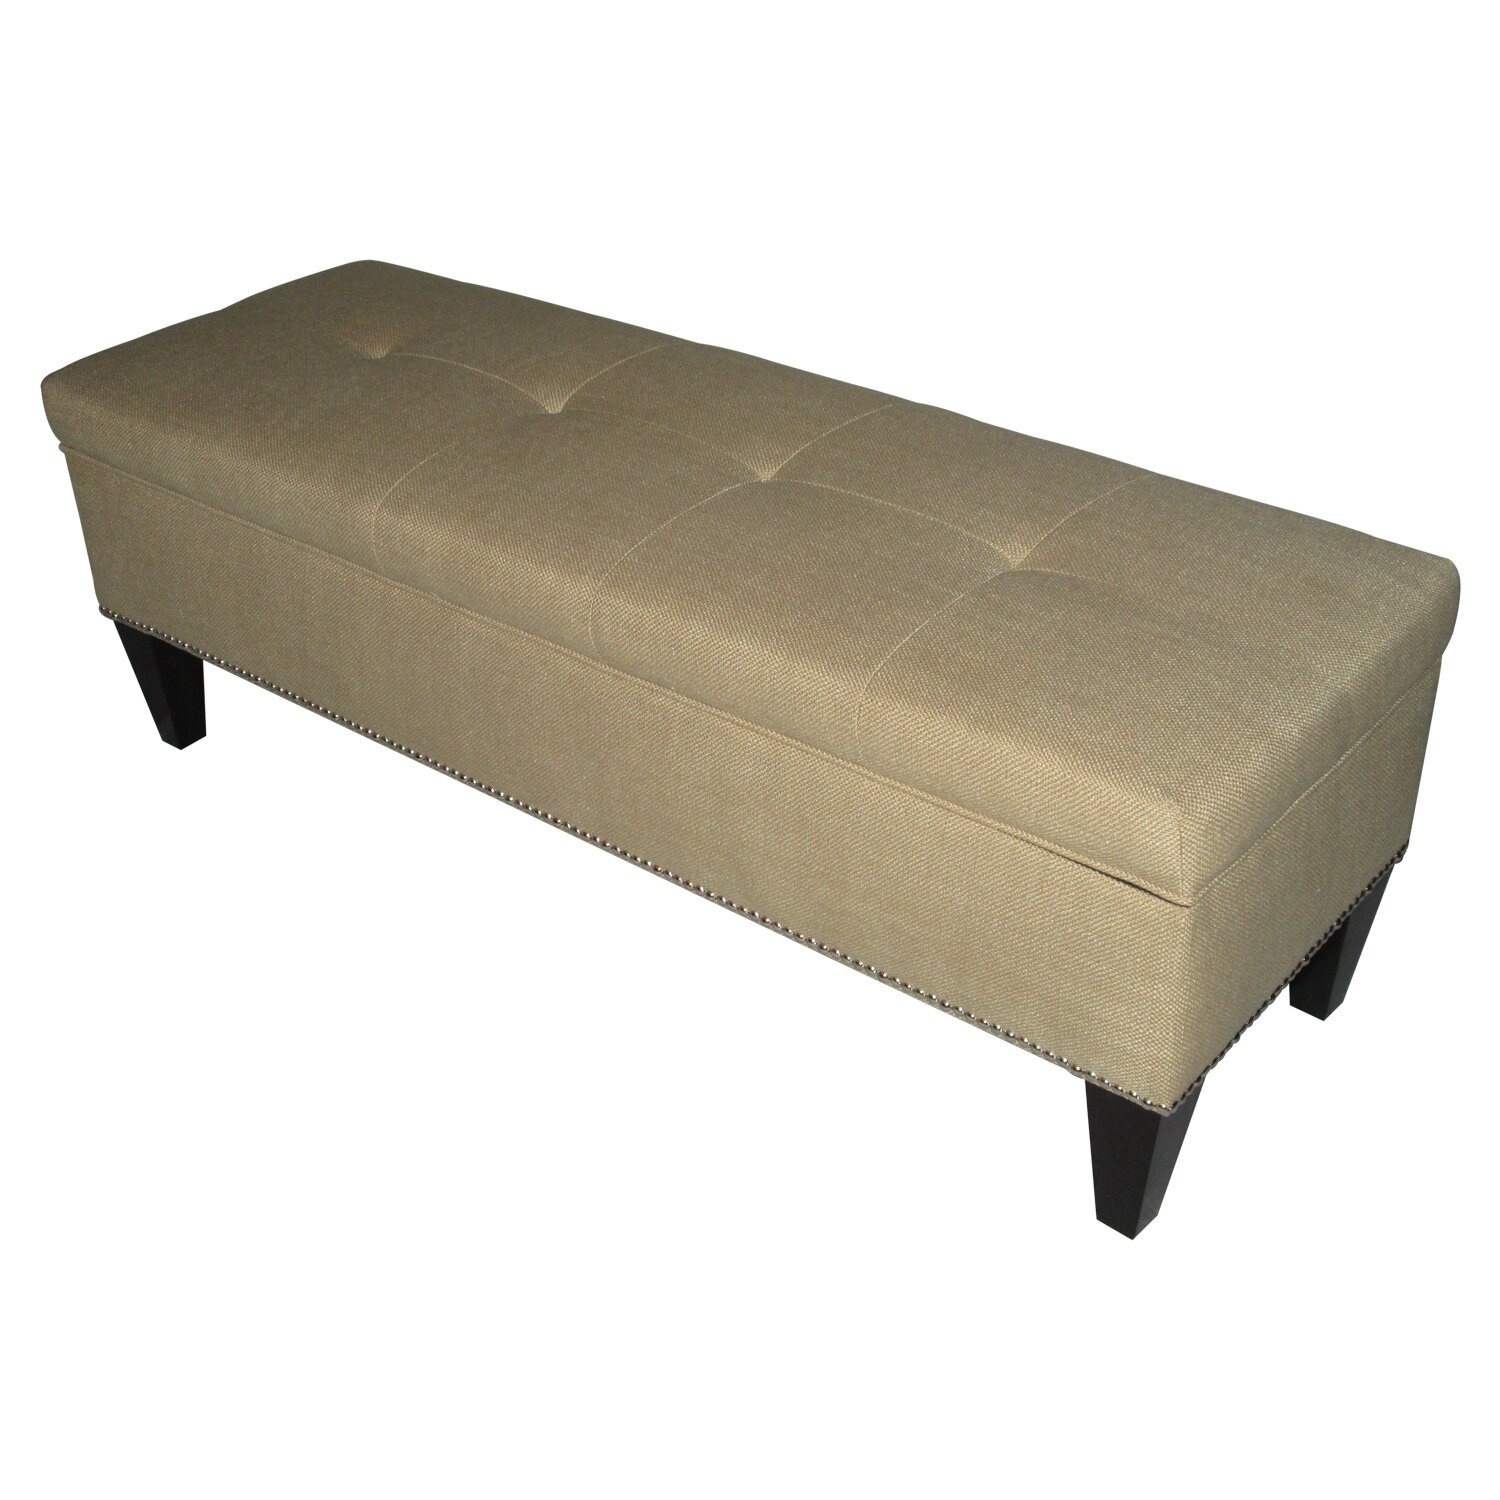 Sole Designs Brooke Upholstered Storage Bench In Sand Reviews Wayfair